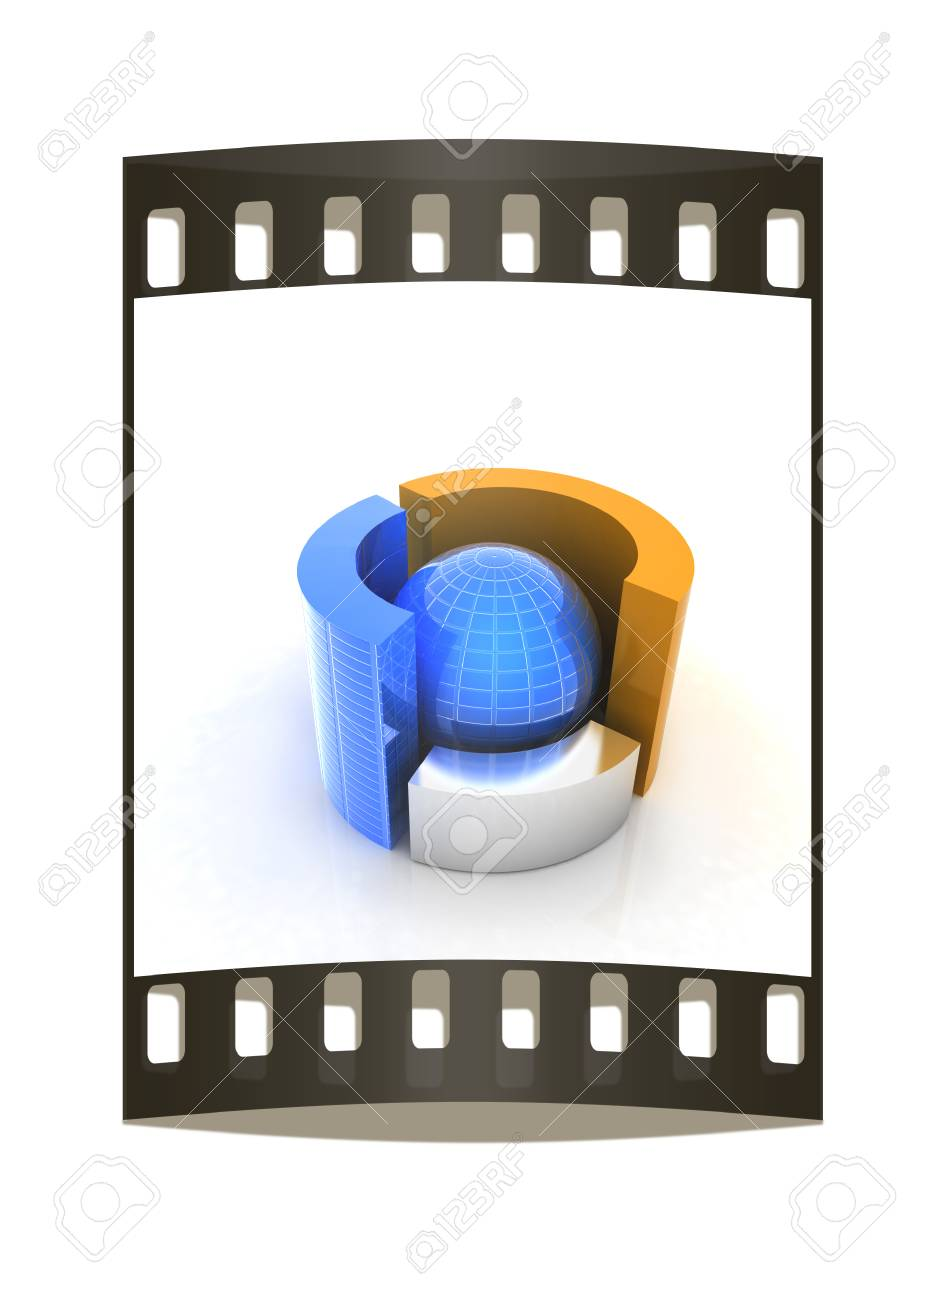 hight resolution of 3d circular diagram and sphere on white background the film strip stock photo 39418823